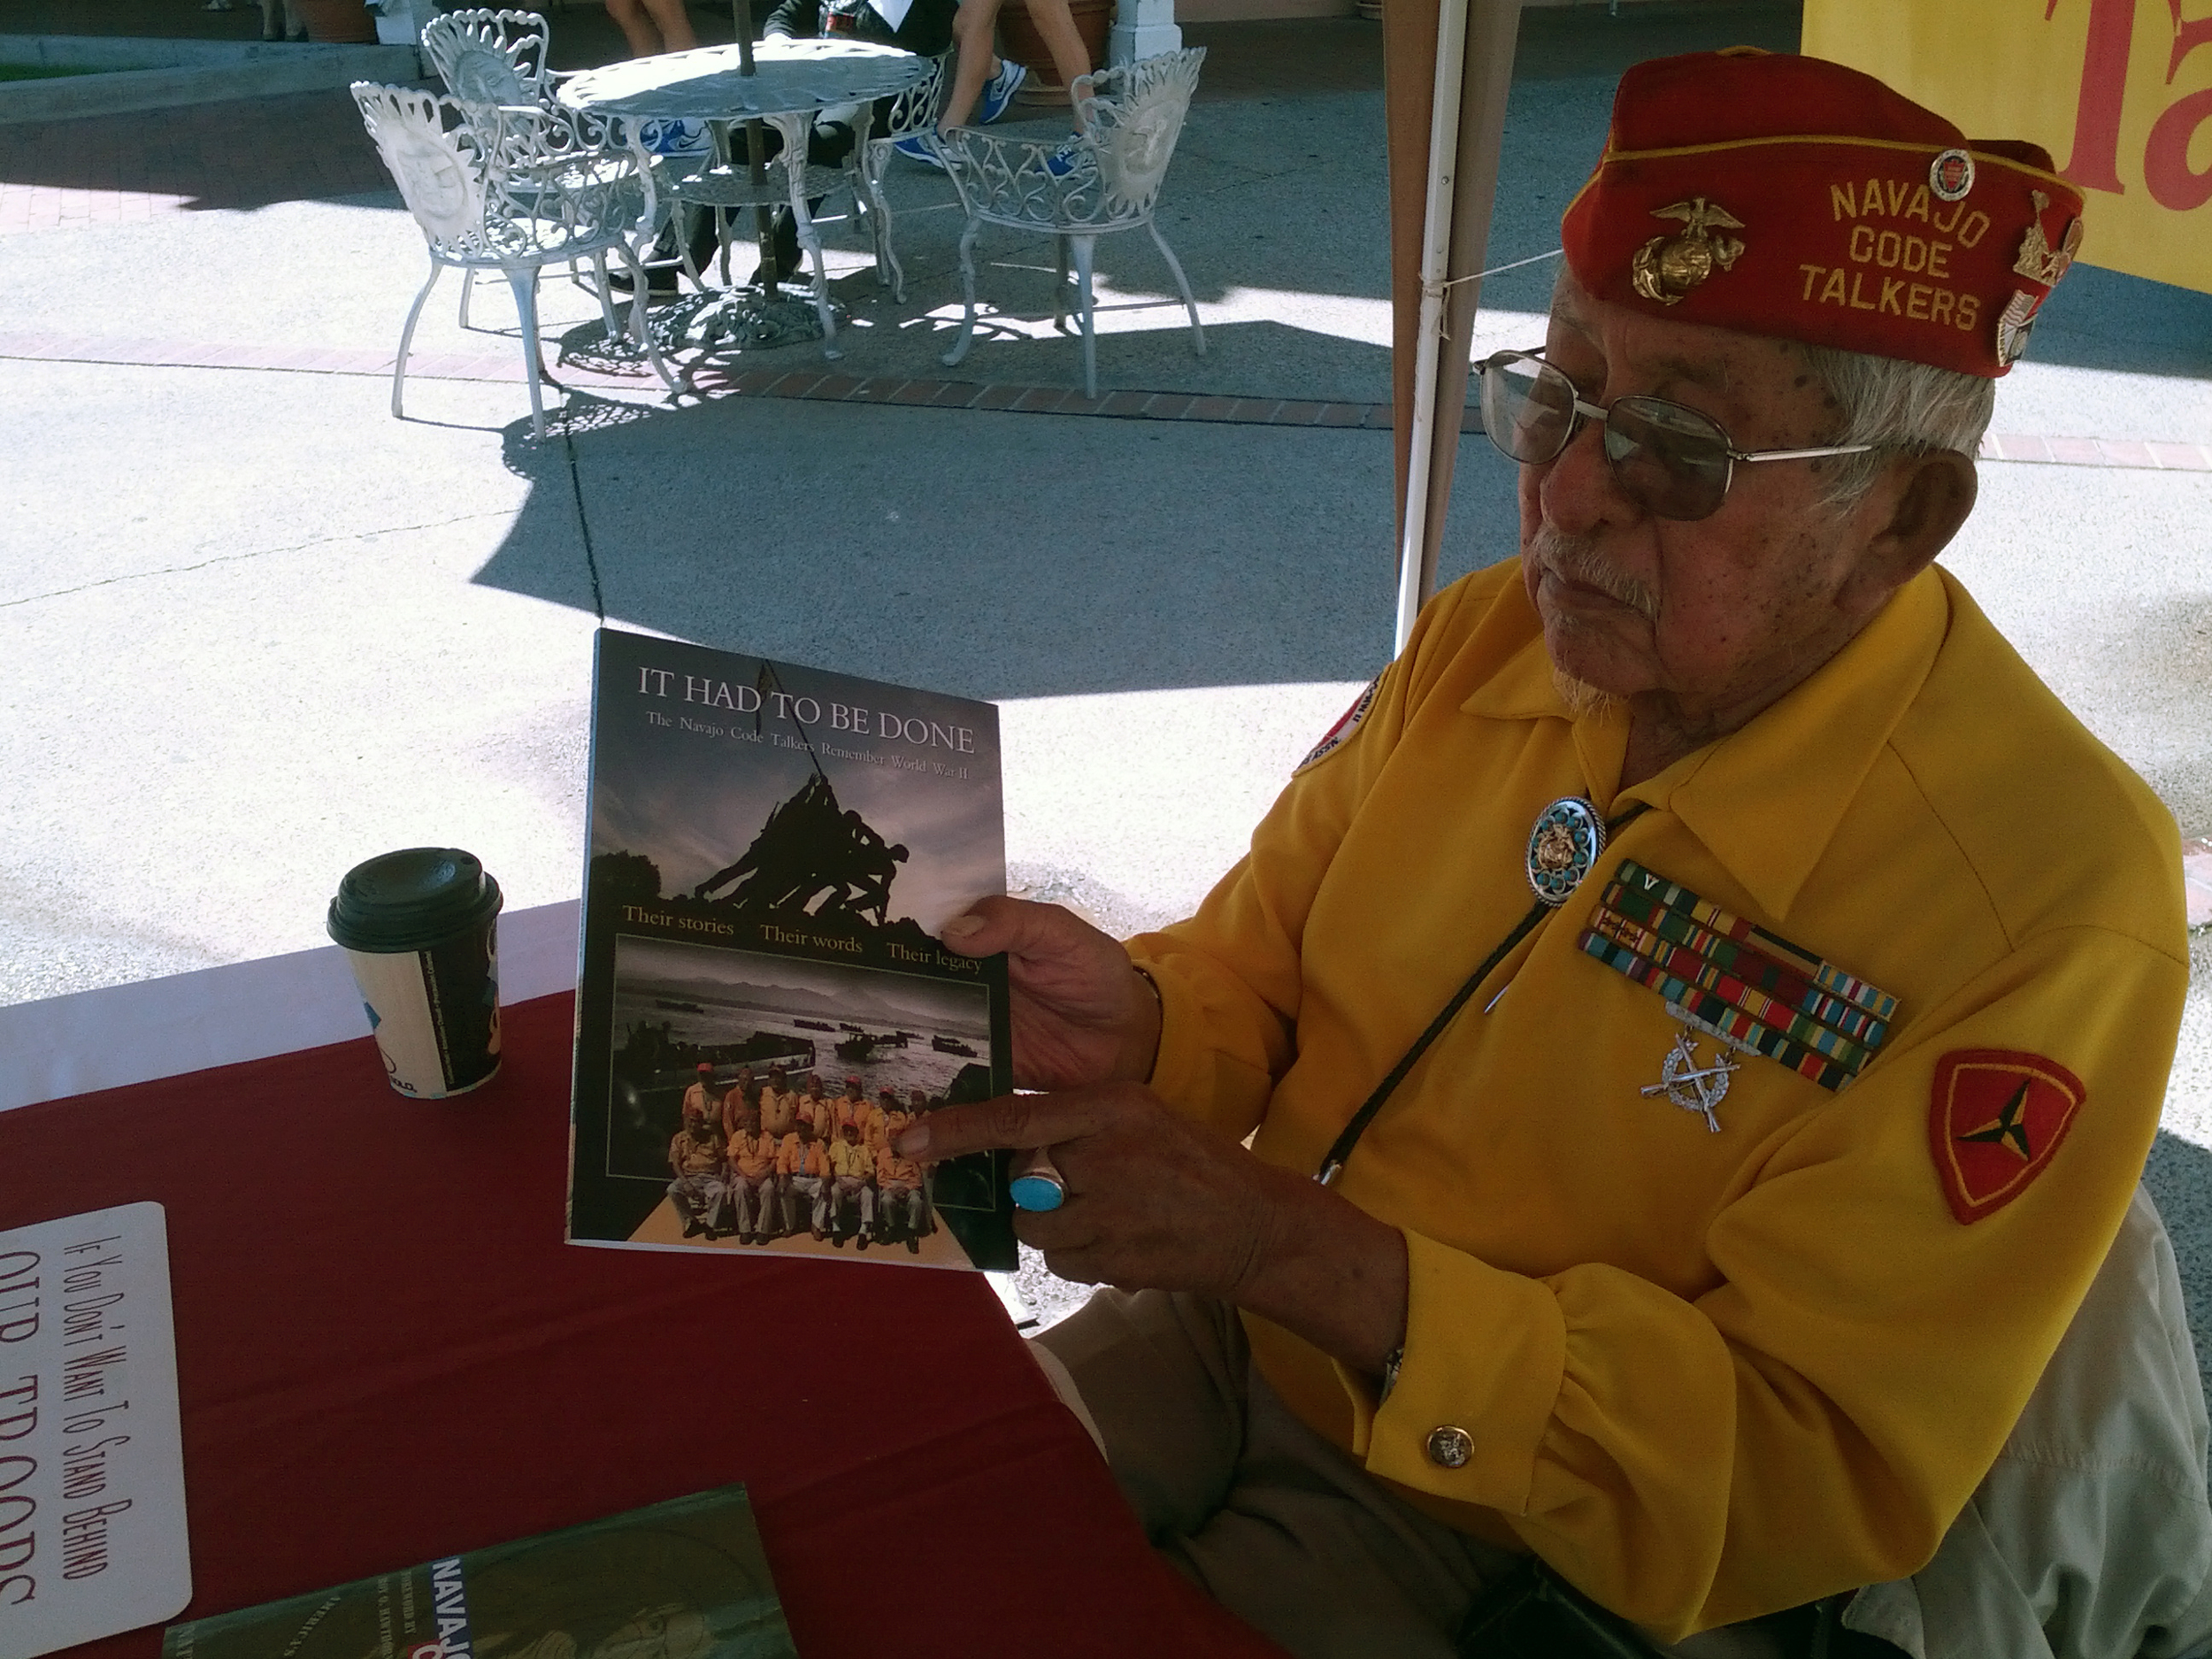 2013-09-20 Old Town Albuquerque (11) got to meet three of the remaining Navajo Code Talkers.jpg